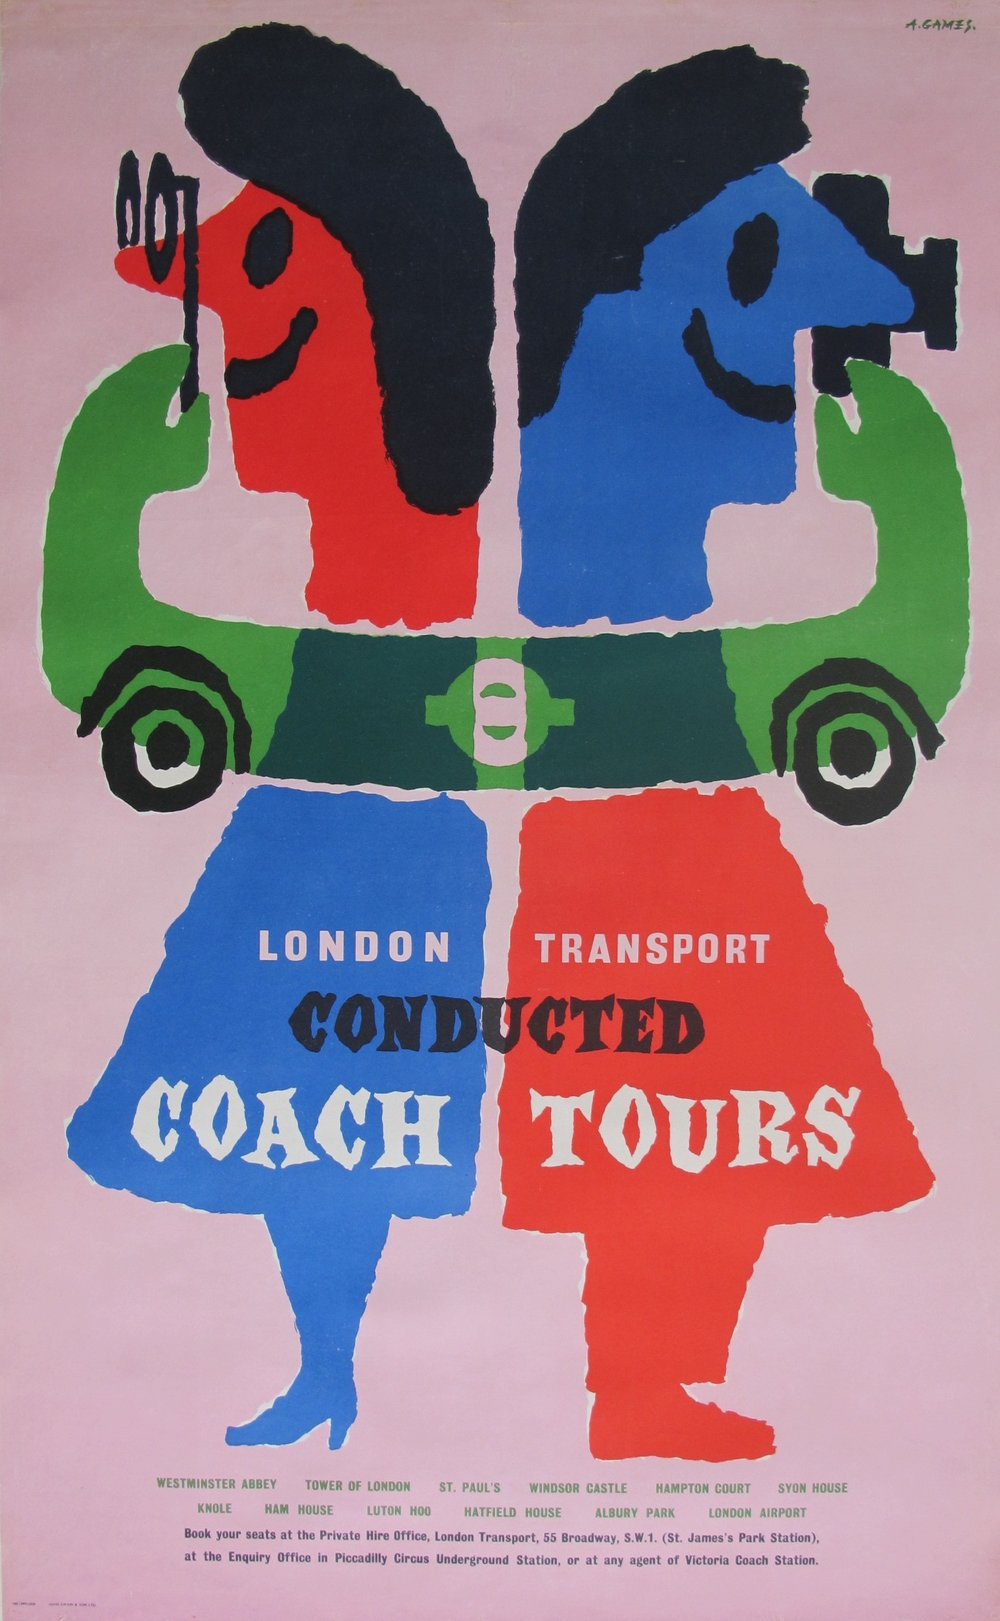 London_Transport_Abram_Games.jpg